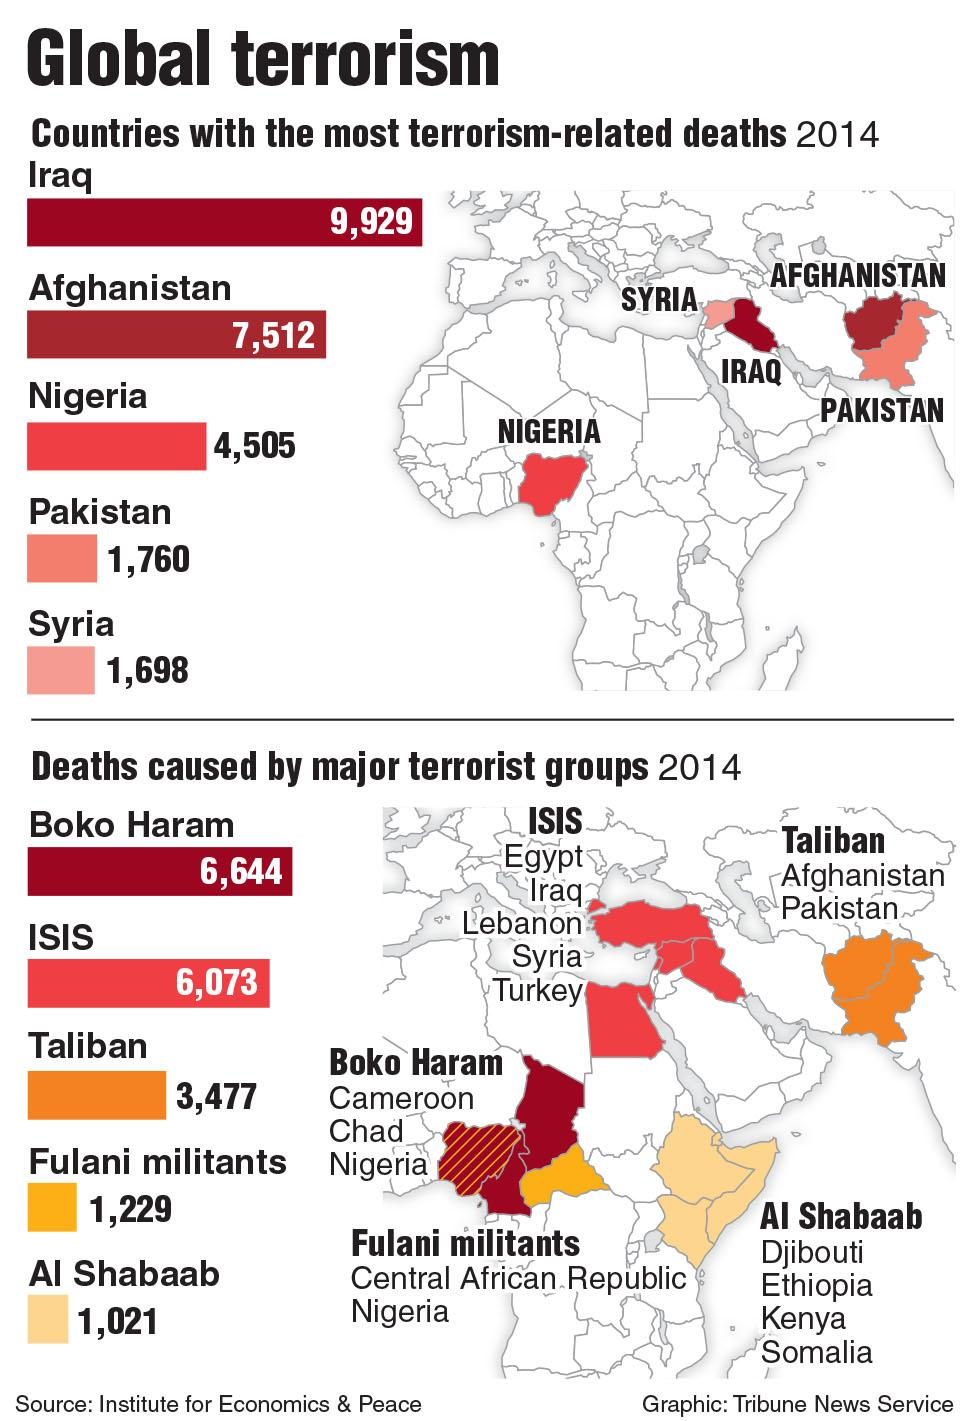 Charts of the most deadly terrorist groups and the countries with the most terrorism deaths. Tribune News Service 2015